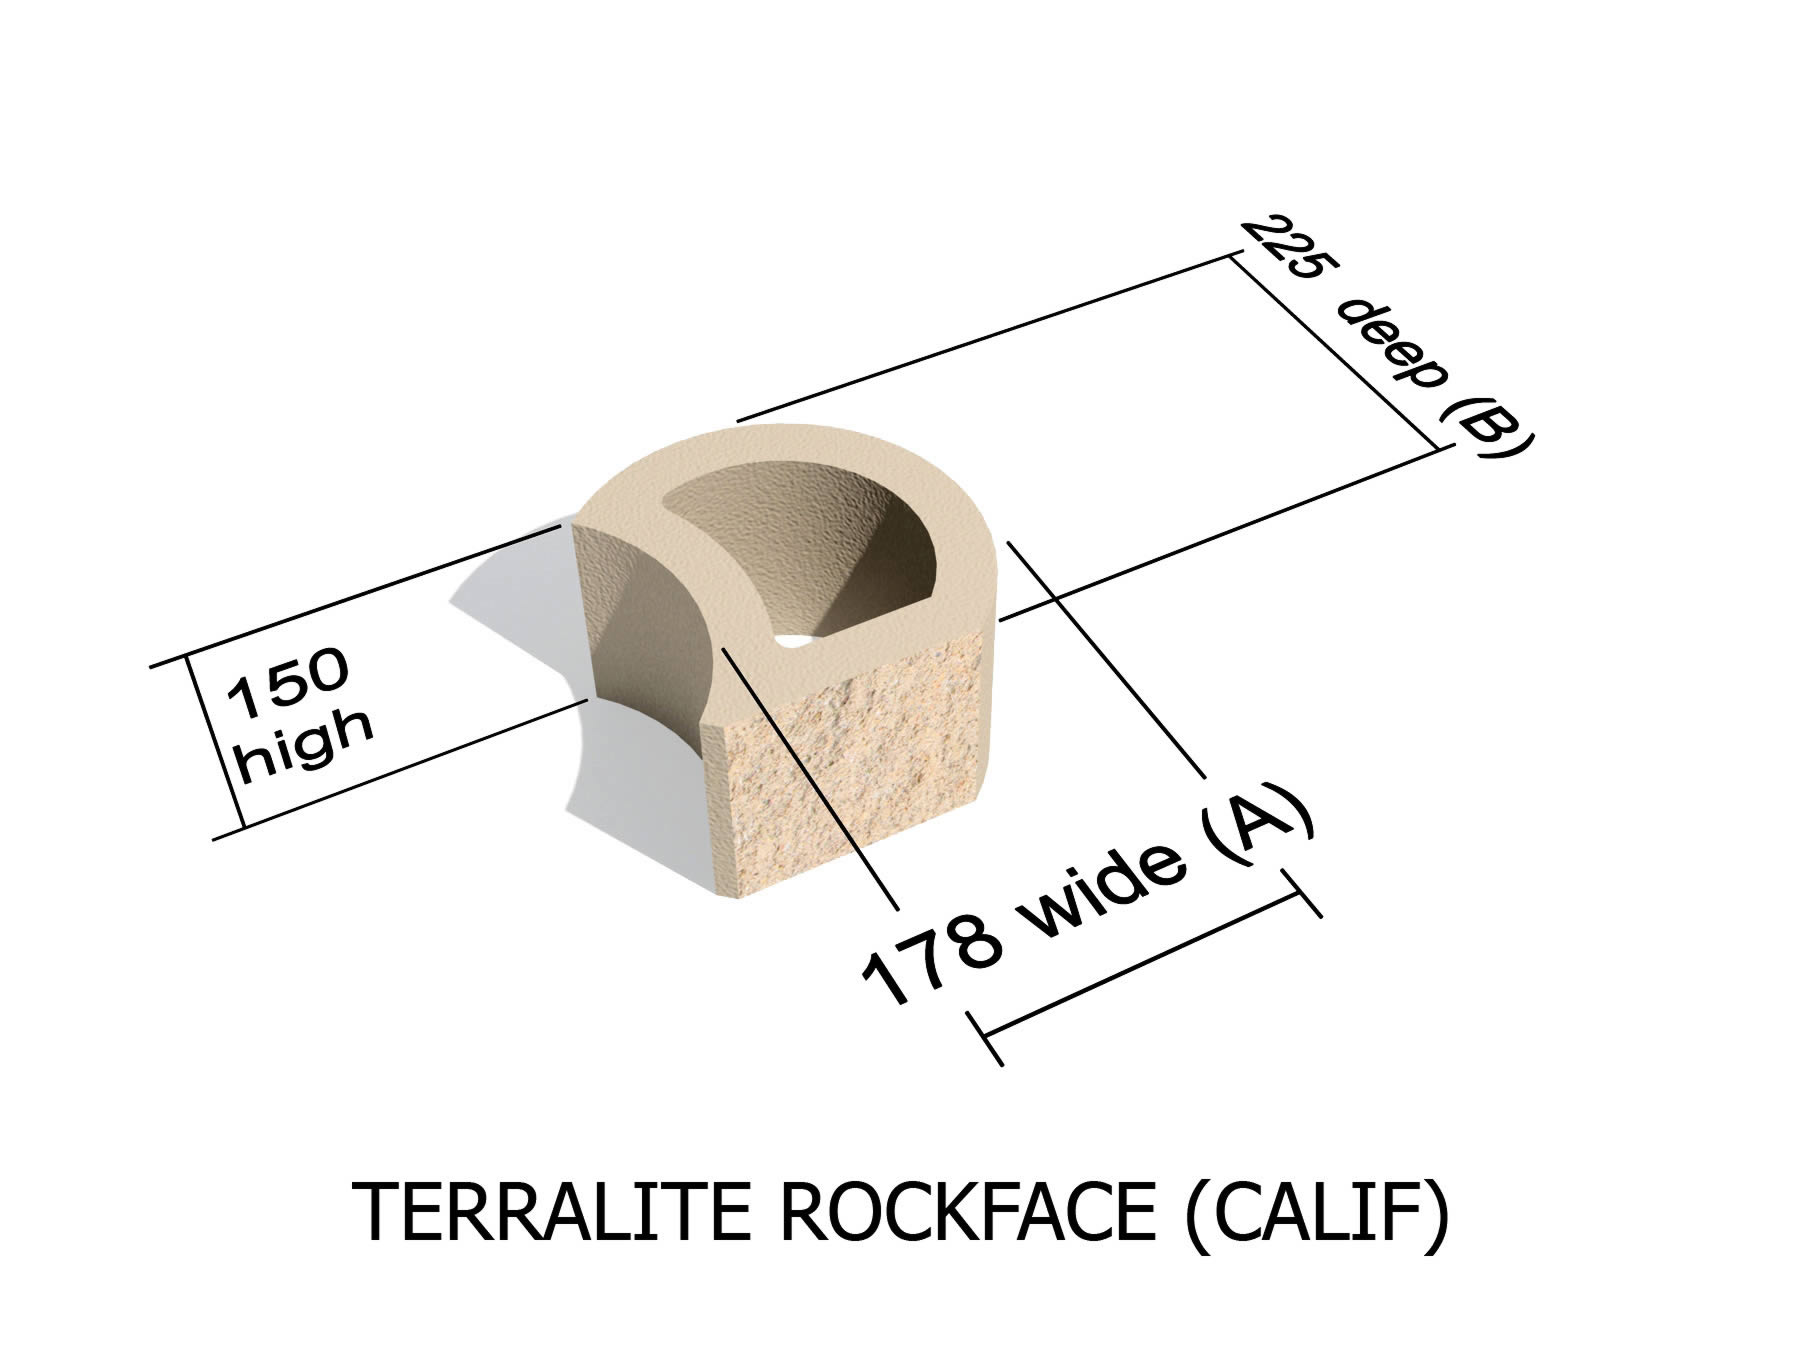 L36_CALIF rock face retaining block